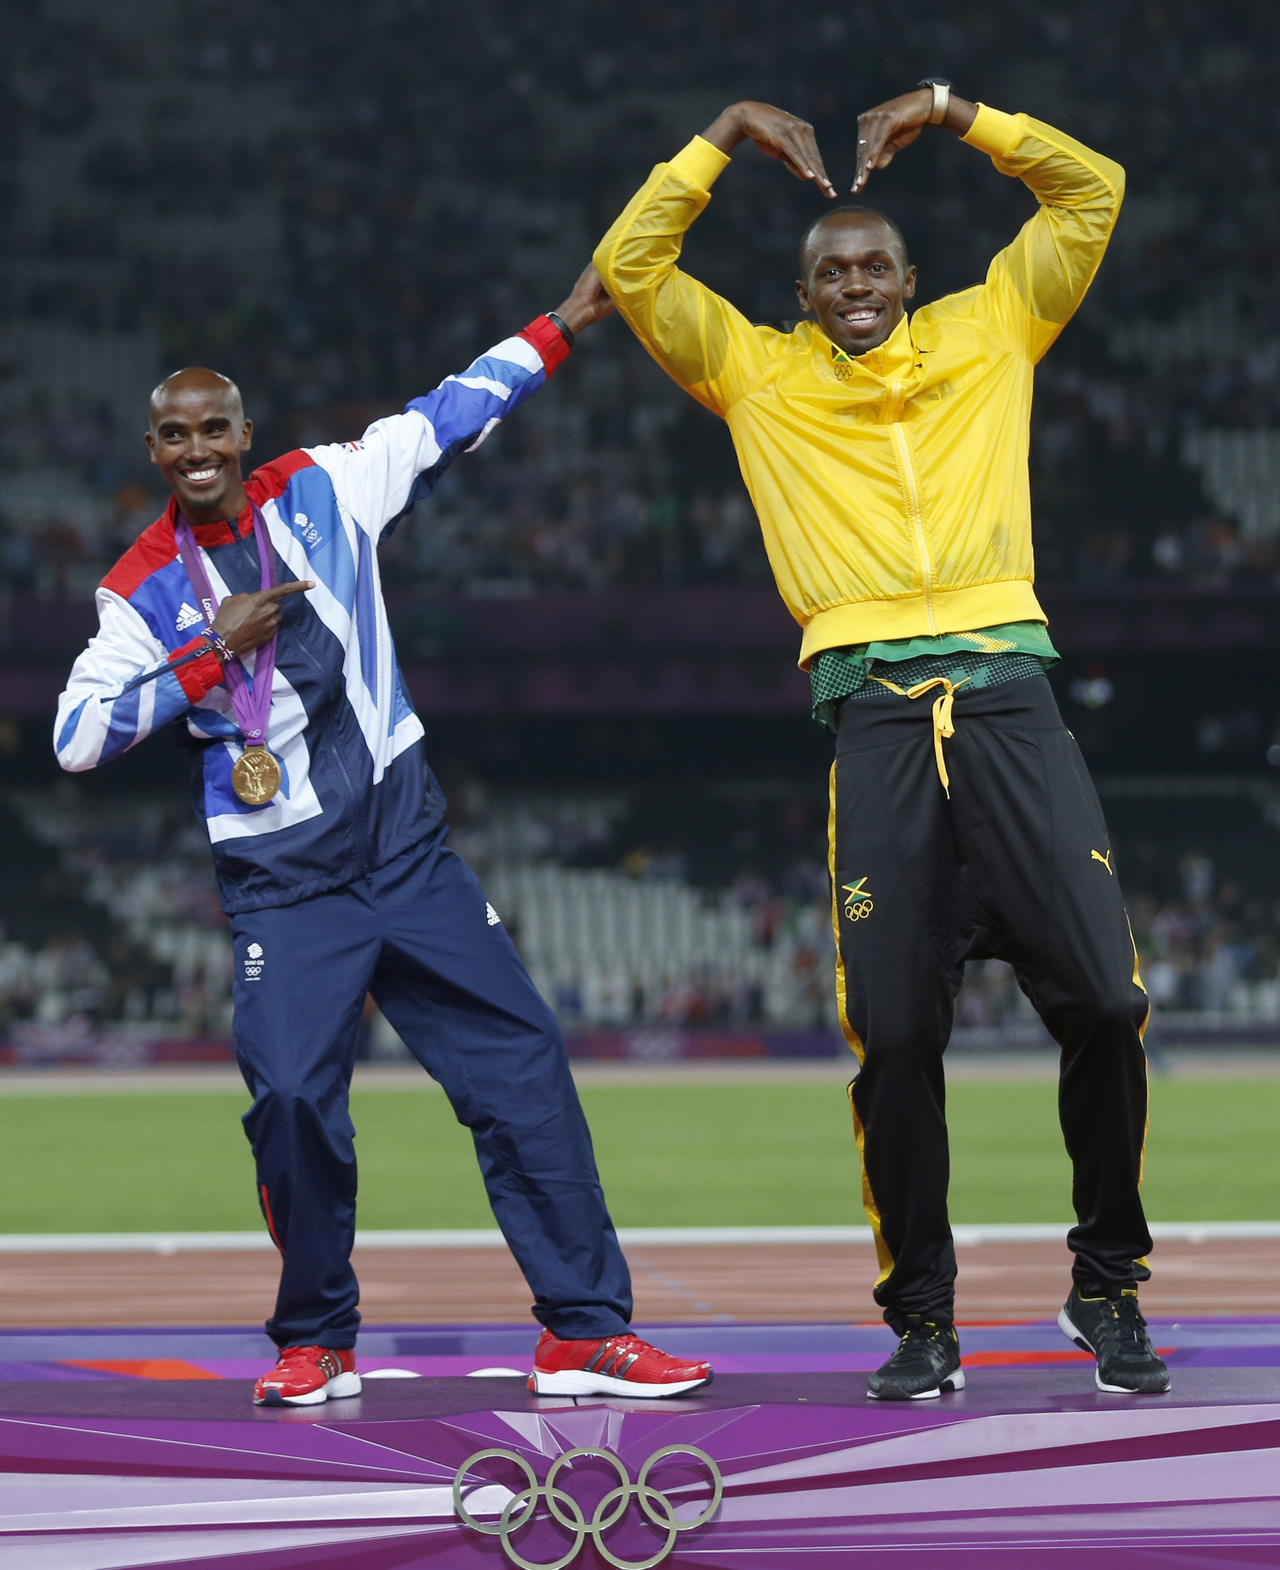 Jamaica's Usain Bolt (R) celebrates with Britain's Mo Farah on the podium after each receiving gold medals, Bolt for men's 4x100m relay and Farah for men's 5000m at the victory ceremony at the London 2012 Olympic Games at the Olympic Stadium August 11, 2012. REUTERS/Eddie KeoghFULL COVERAGE: The London 2012 Summer Olympic Games